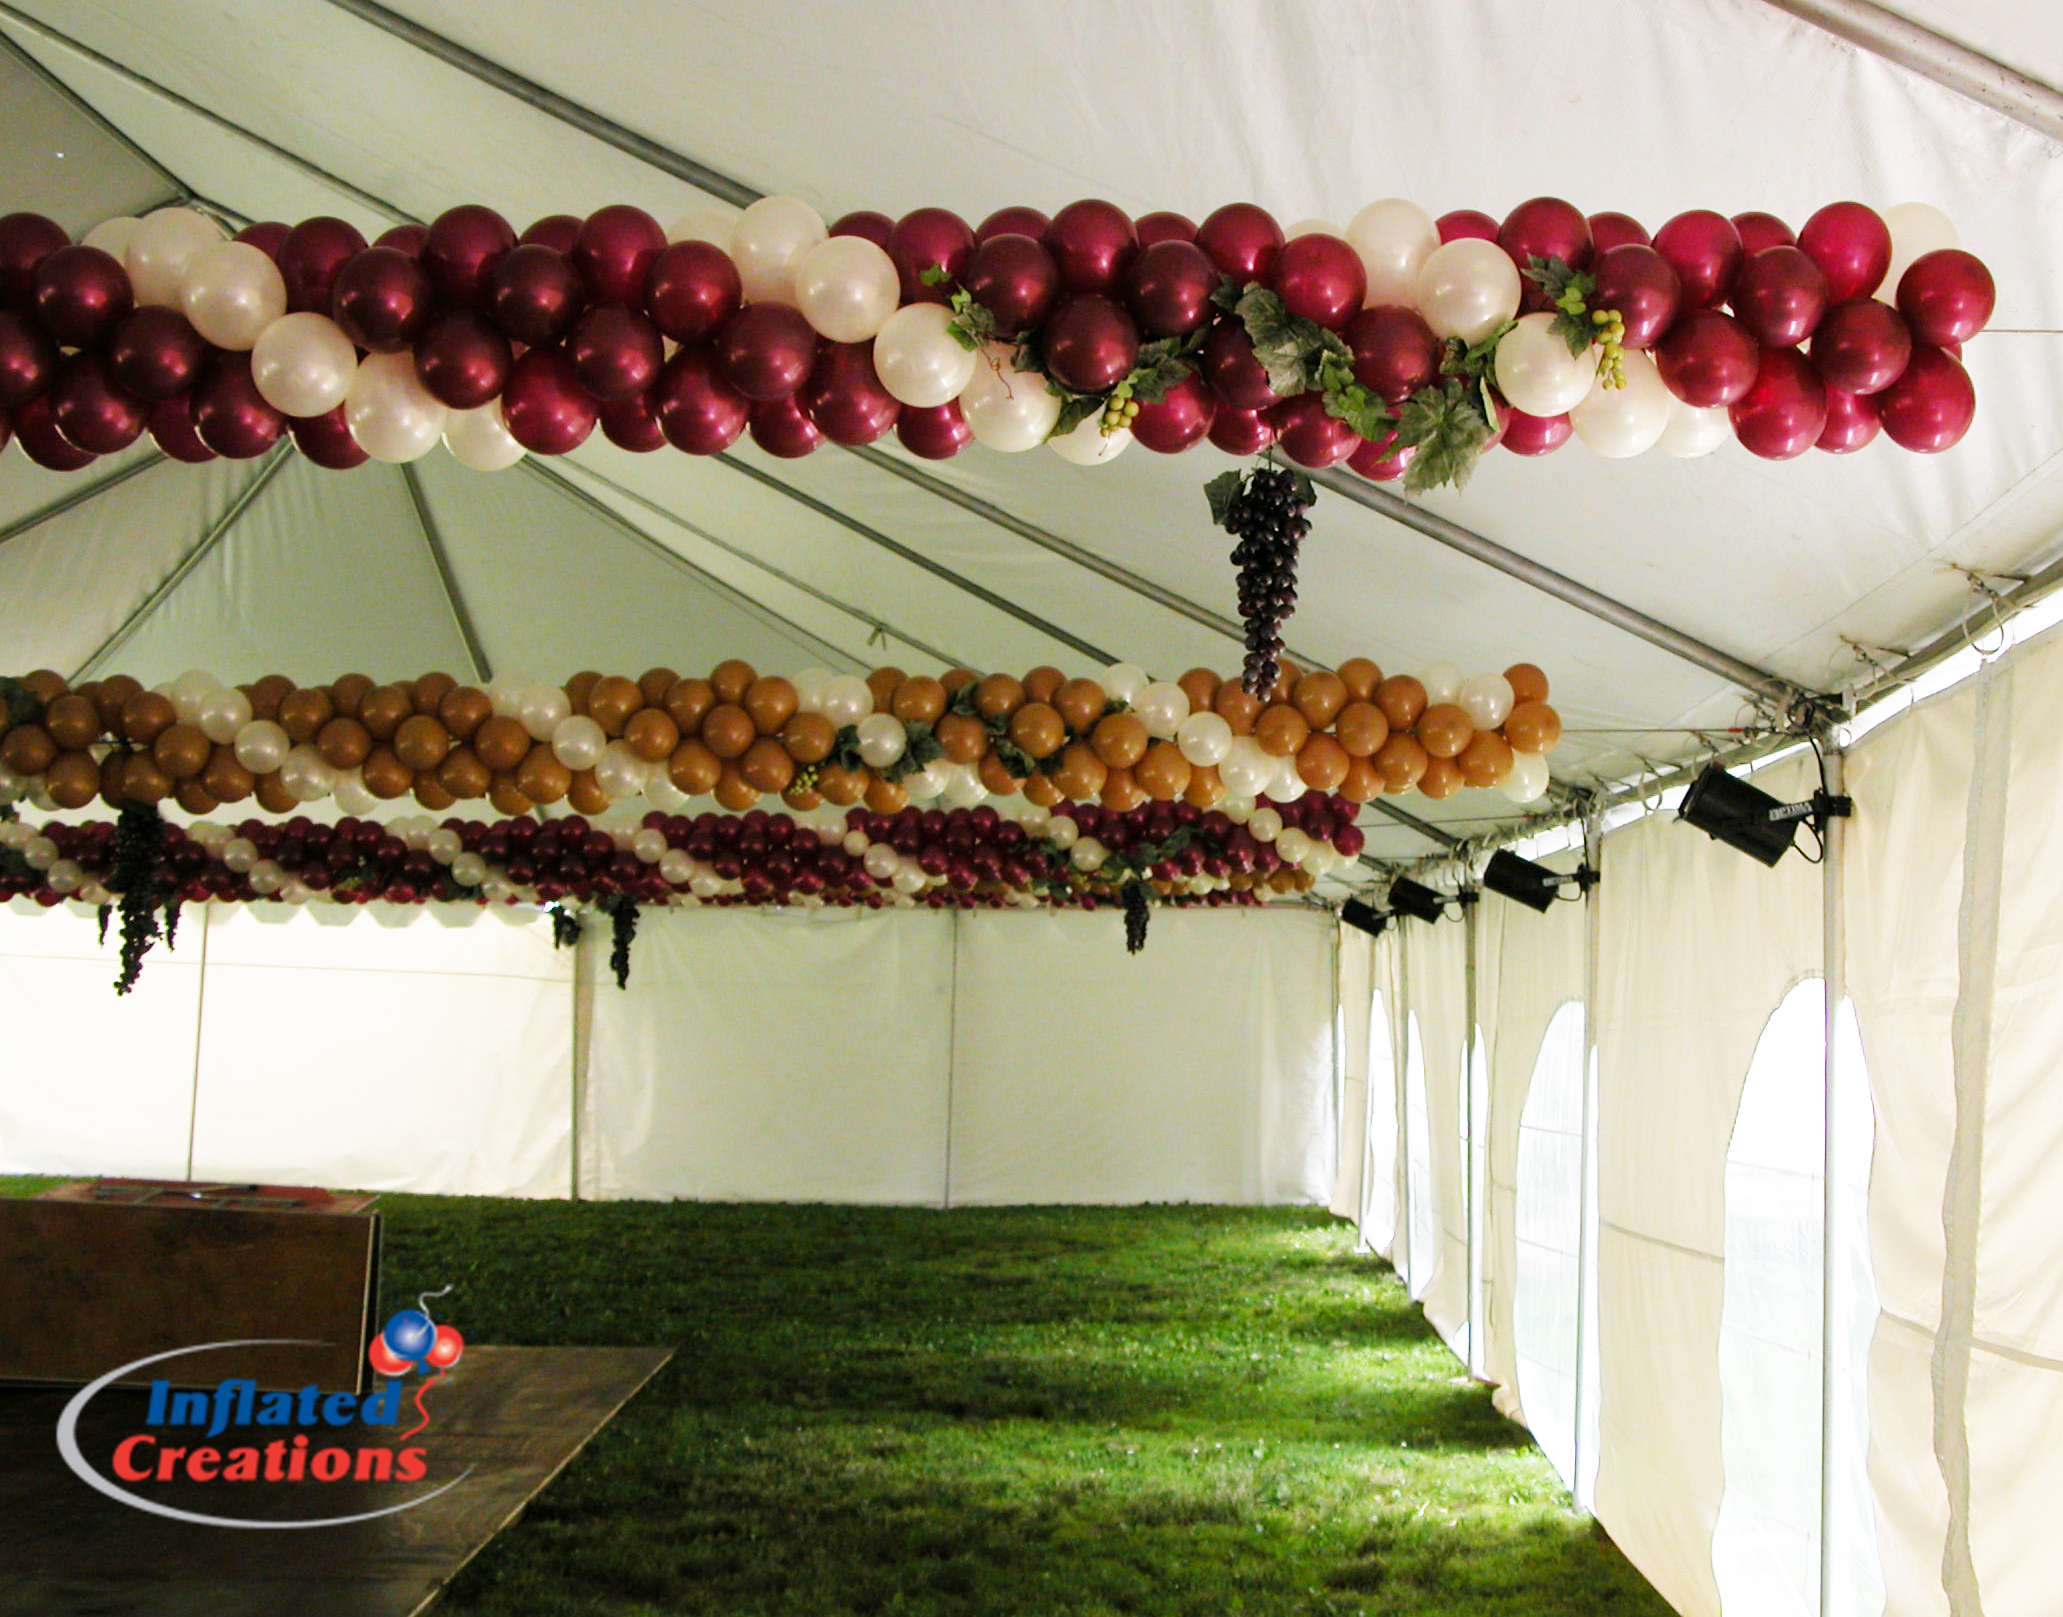 Tent Decor - Grapevine